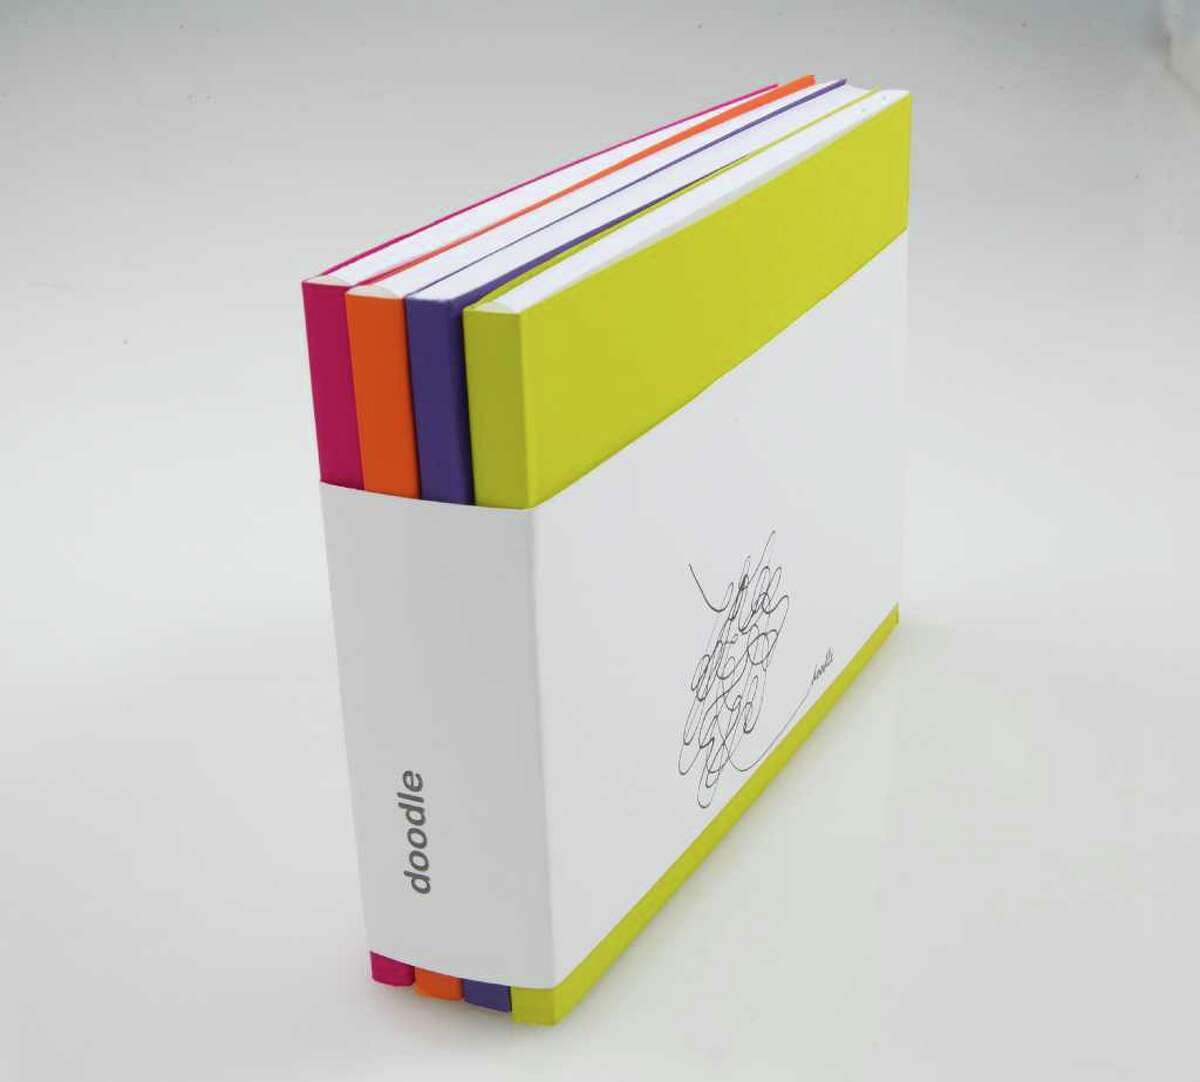 GLOSS GIFTS: Poonam Patel Doodle sketchbooks (in sets of four), $24-$28 (various sizes), Museum of Fine Arts, Houston Gift Shop